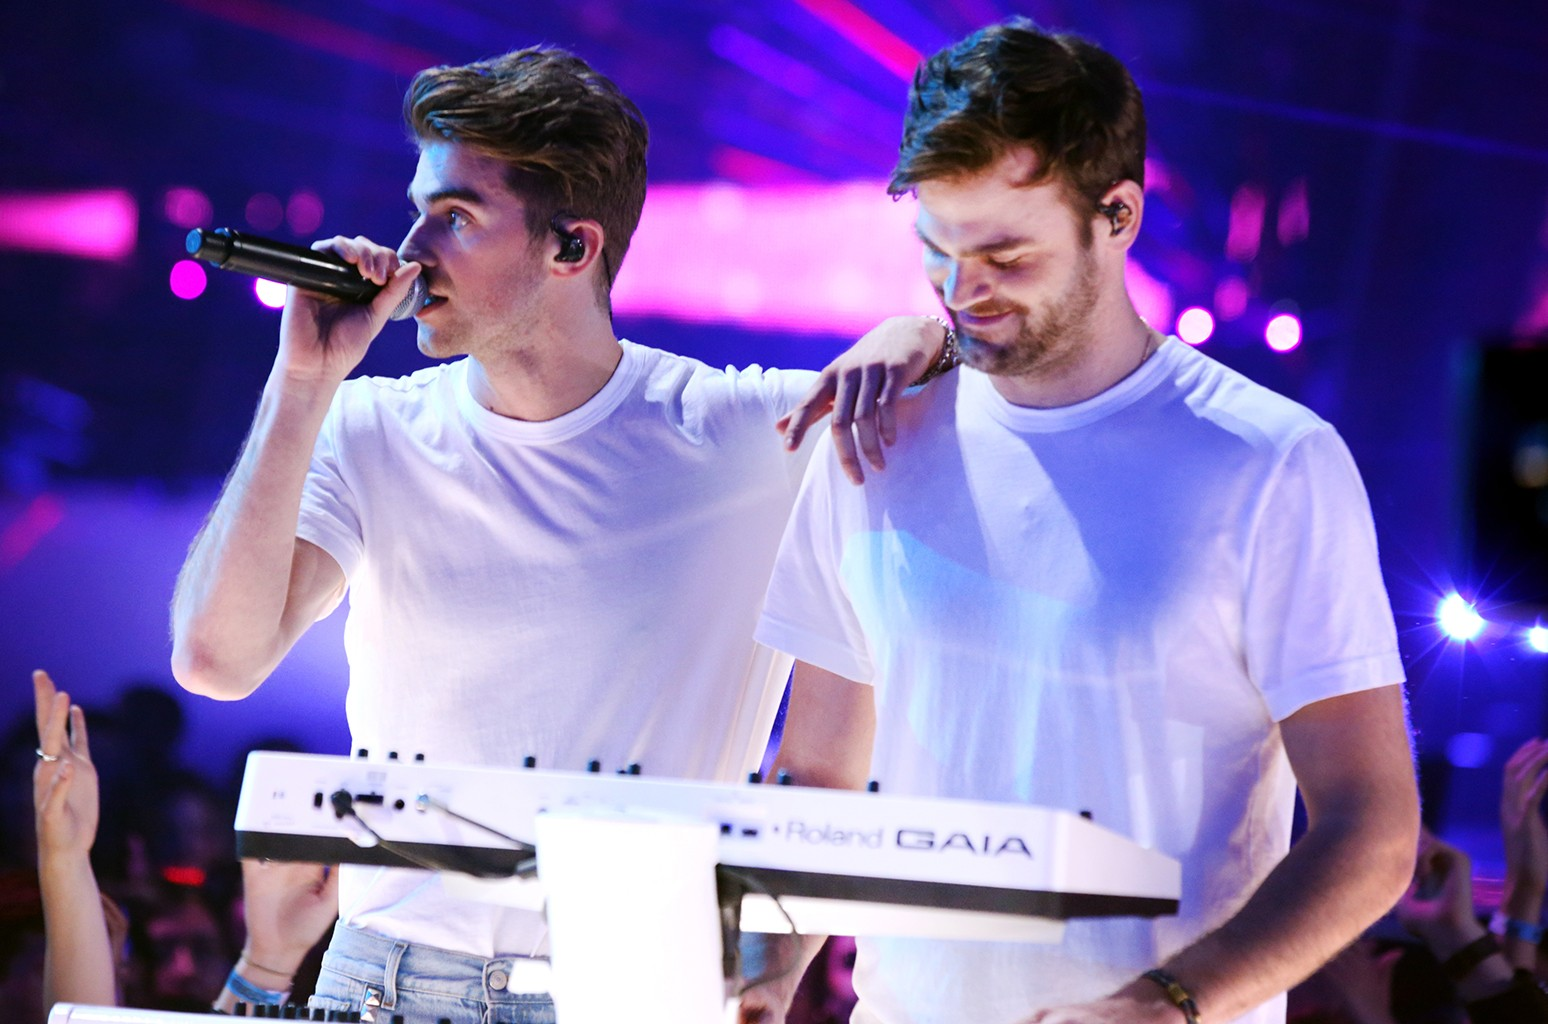 The Chainsmokers perform at the 2017 iHeartRadio Music Awards at The Forum on March 5, 2017 in Inglewood, Calif.